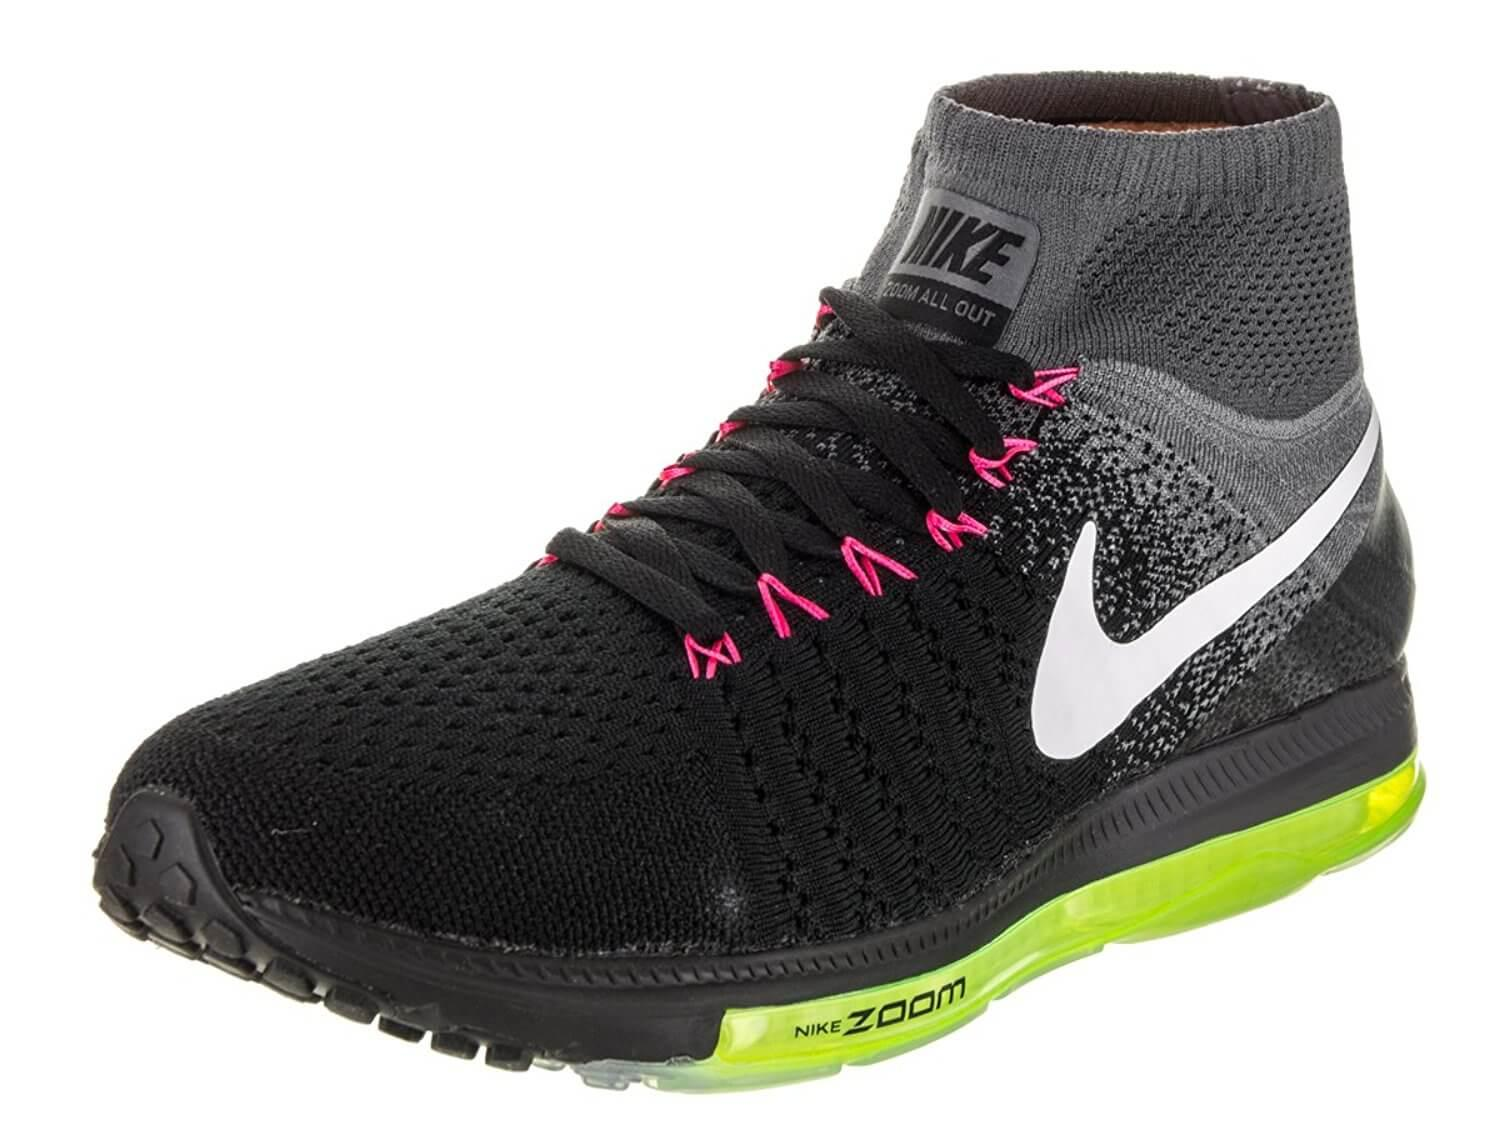 New Nike Mens Shoes Knit